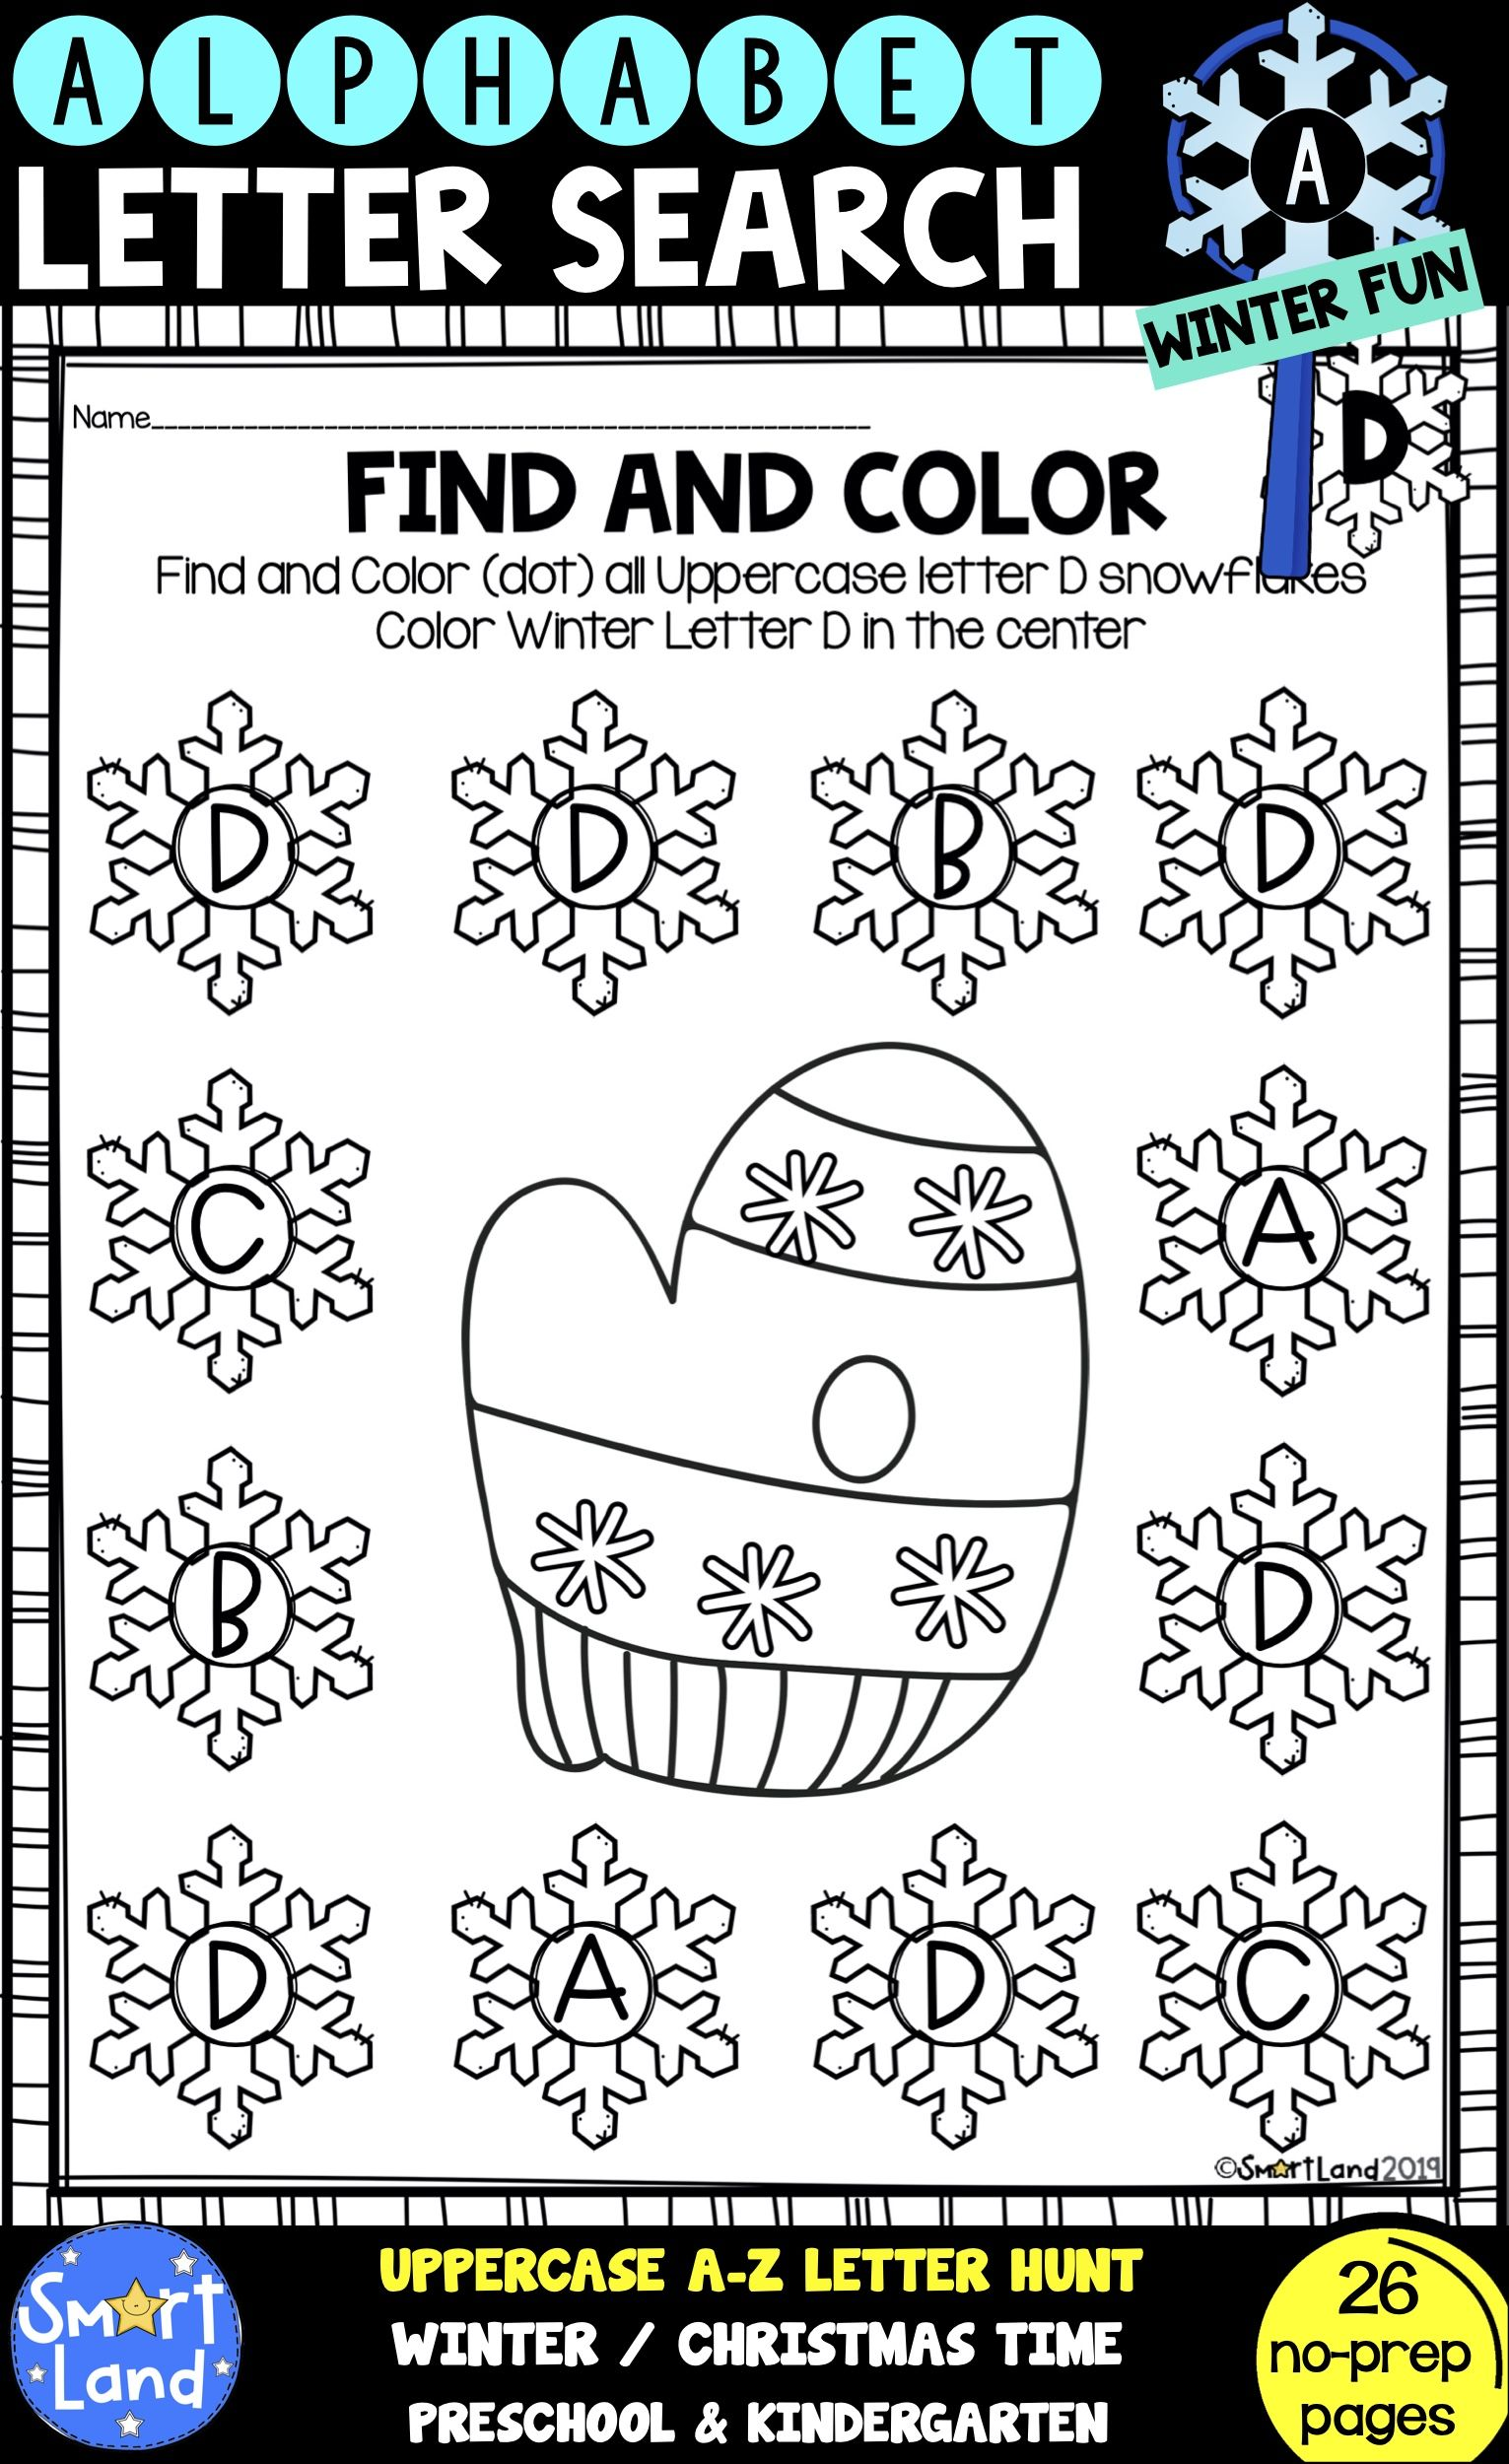 Alphabet Practice Letter Search Snowflake With Images